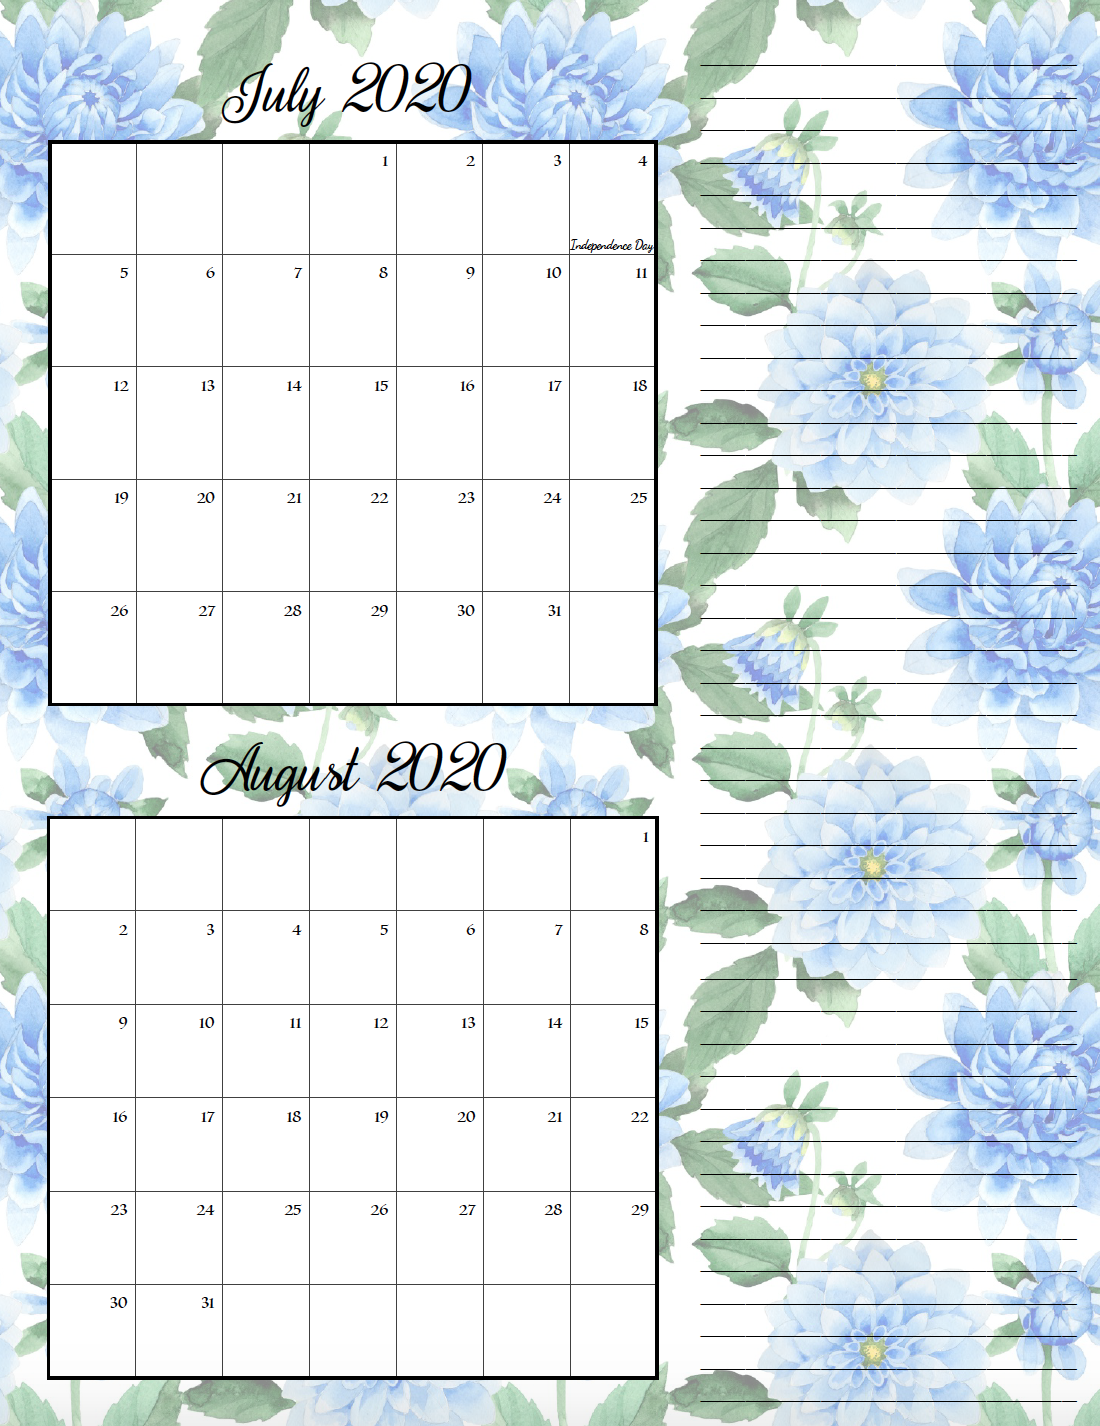 Floral theme July/August bimonthly calendar.